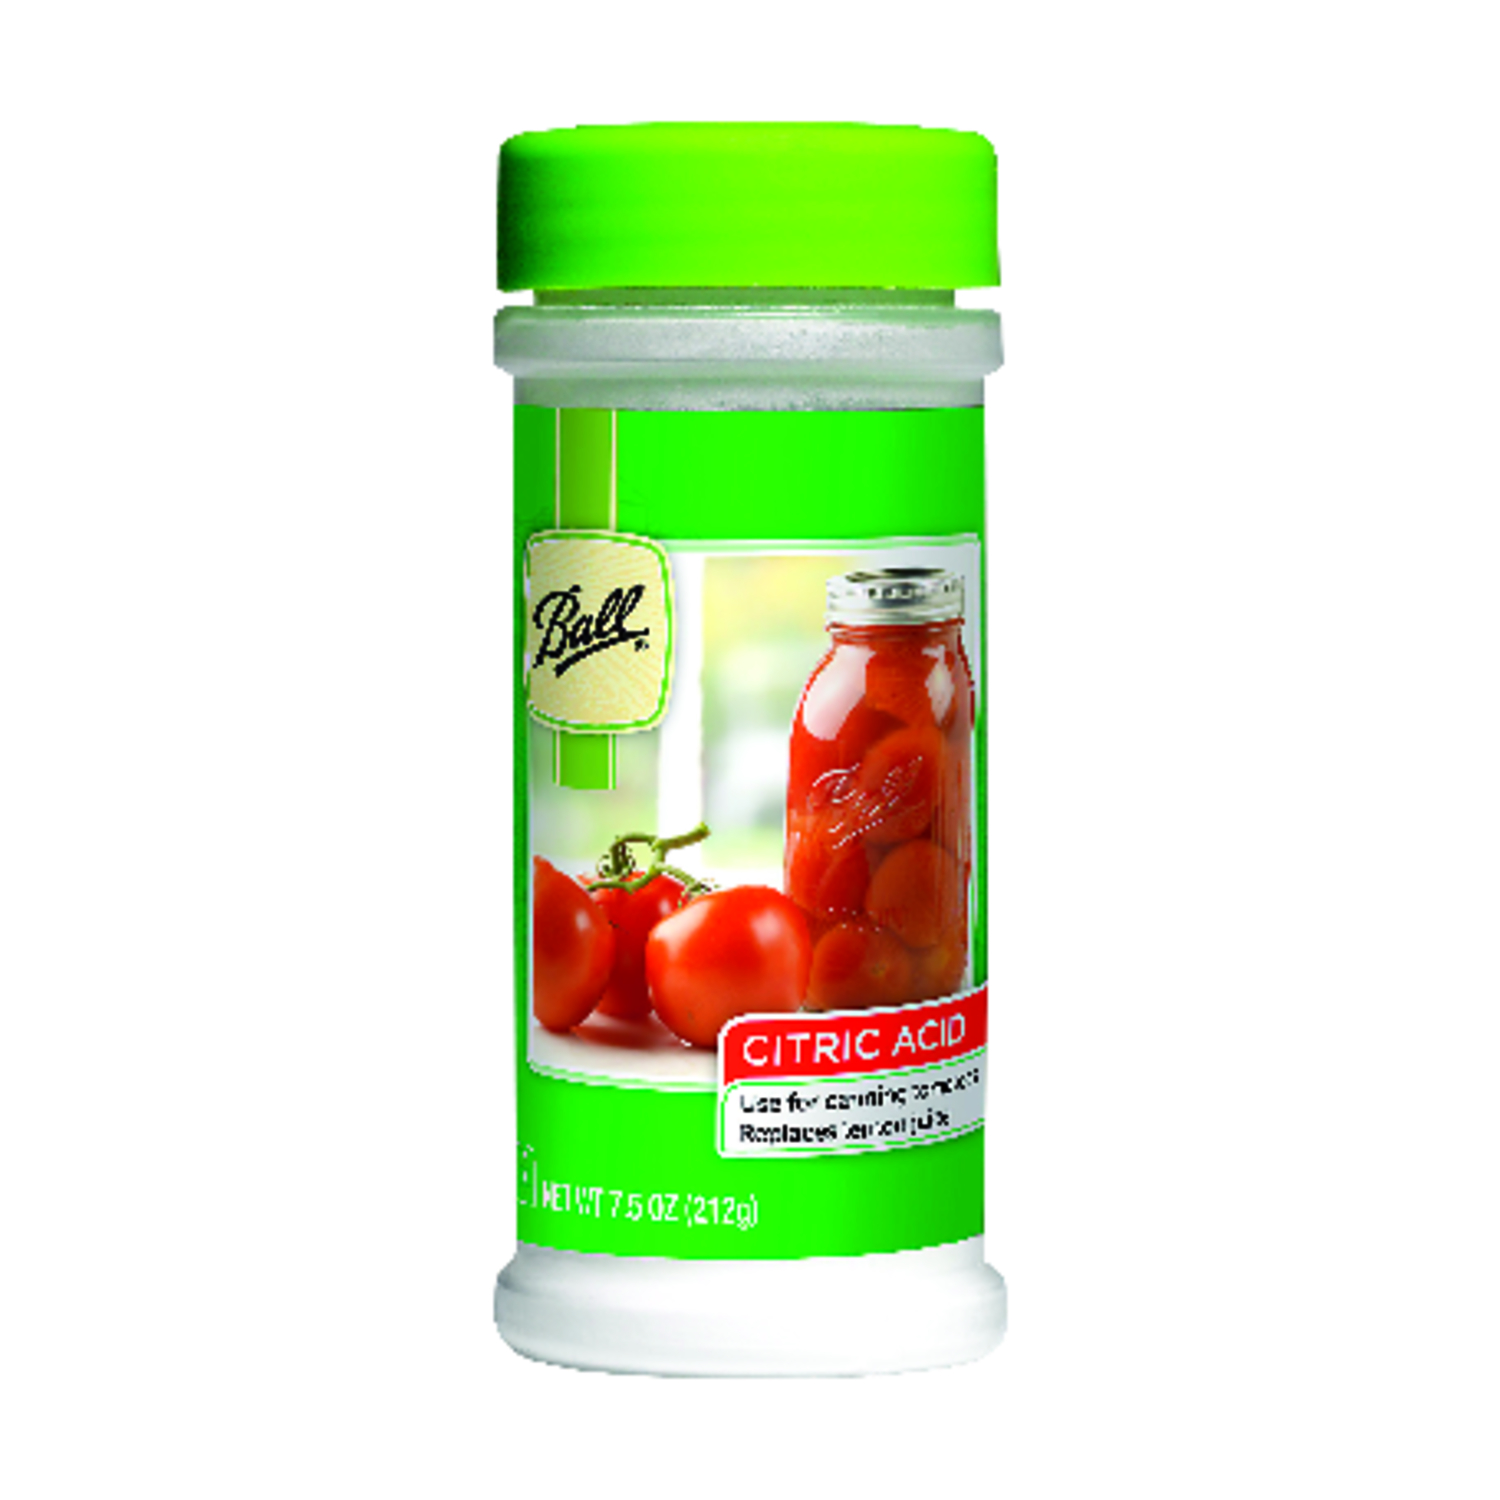 Ball  Citric Acid  7.5 oz.